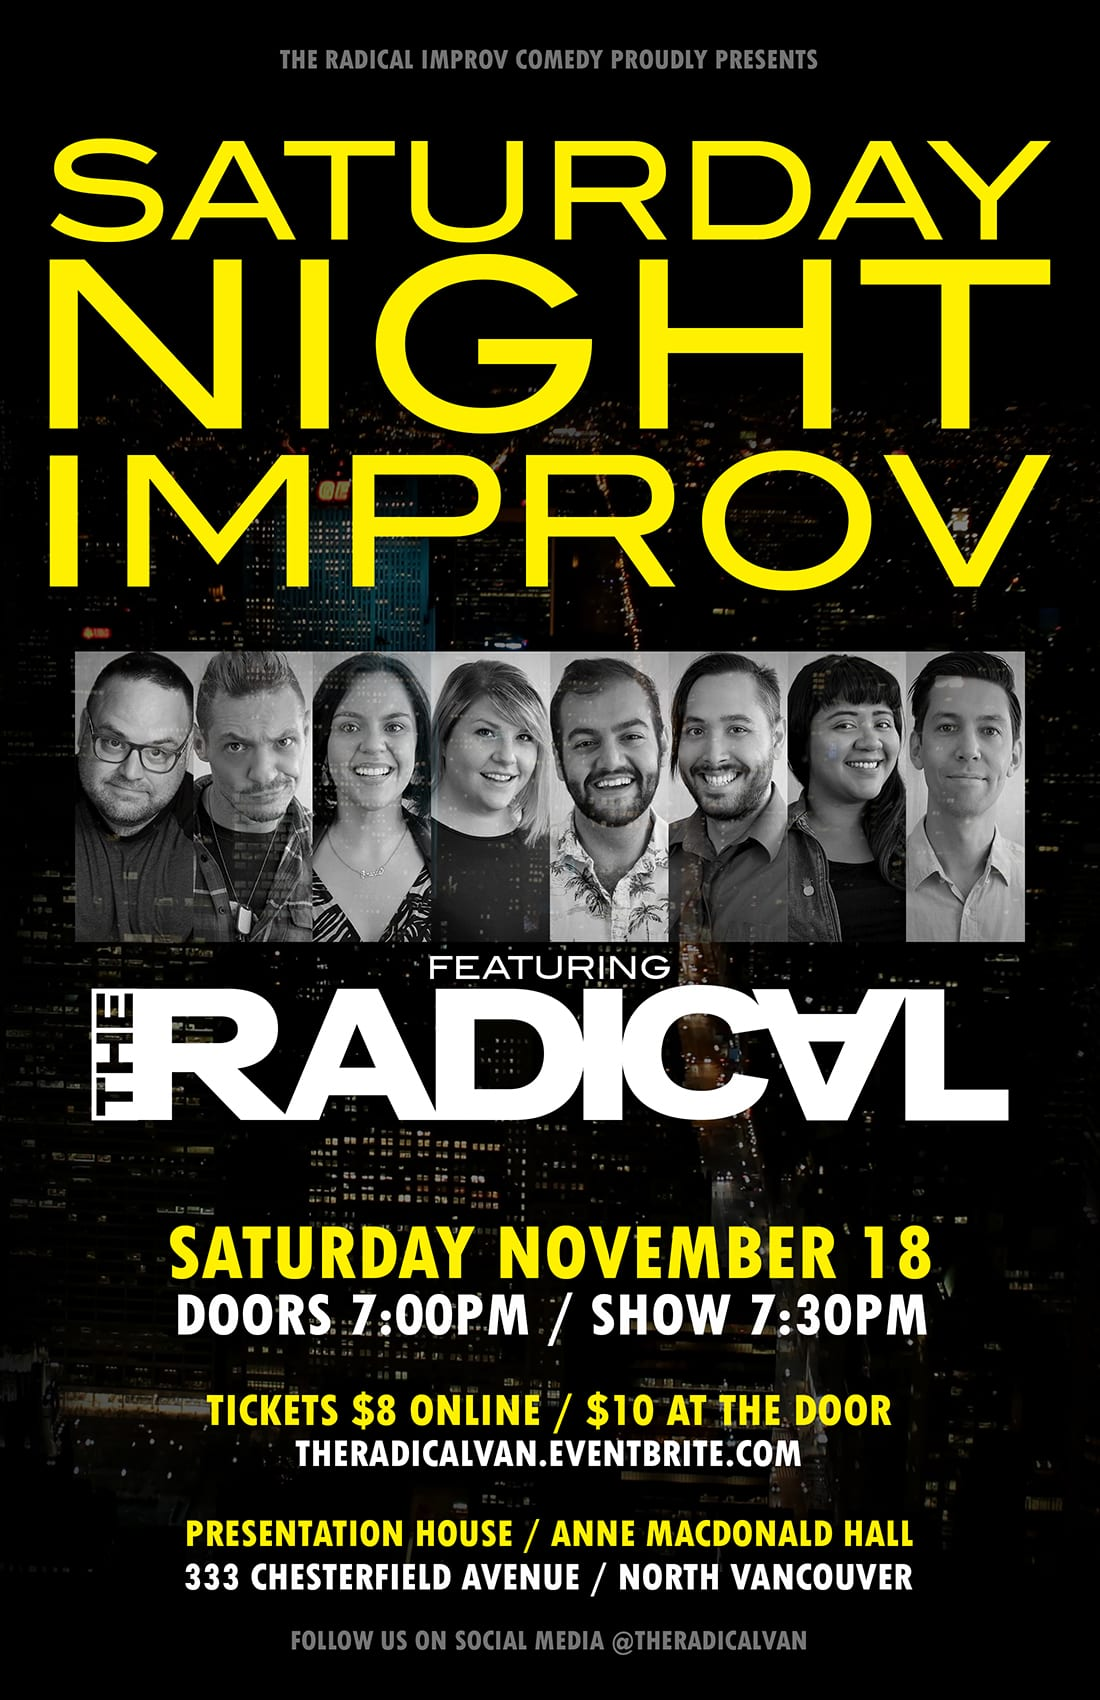 The Radical: Saturday Night Improv at the Presentation House Theatre North Vancouver